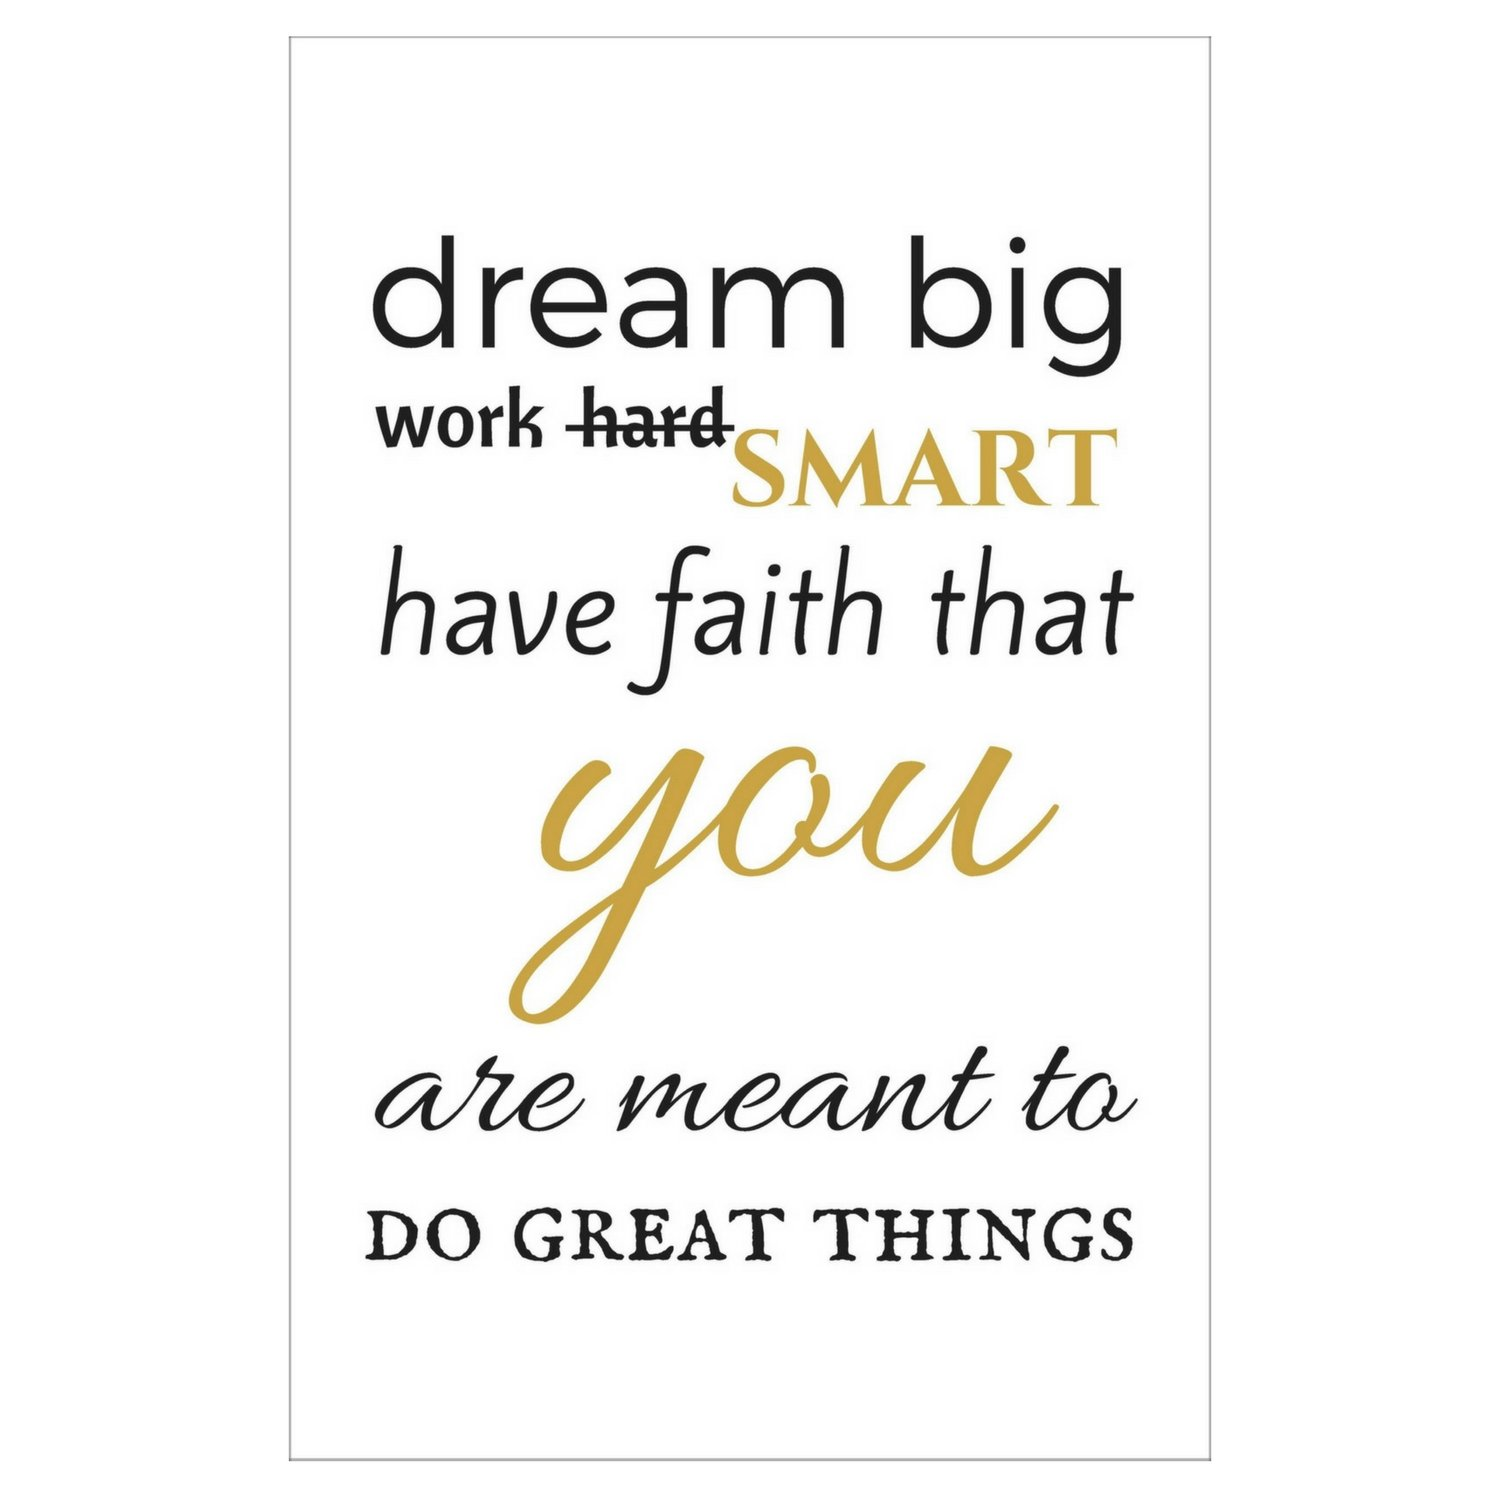 Motivational Poster 11x17 Inches Inspirational Quote Print Golden Black and White Typography Wall Decor Dream Big Work Smart Have Faith that You Are Meant to Do Great Things Unframed